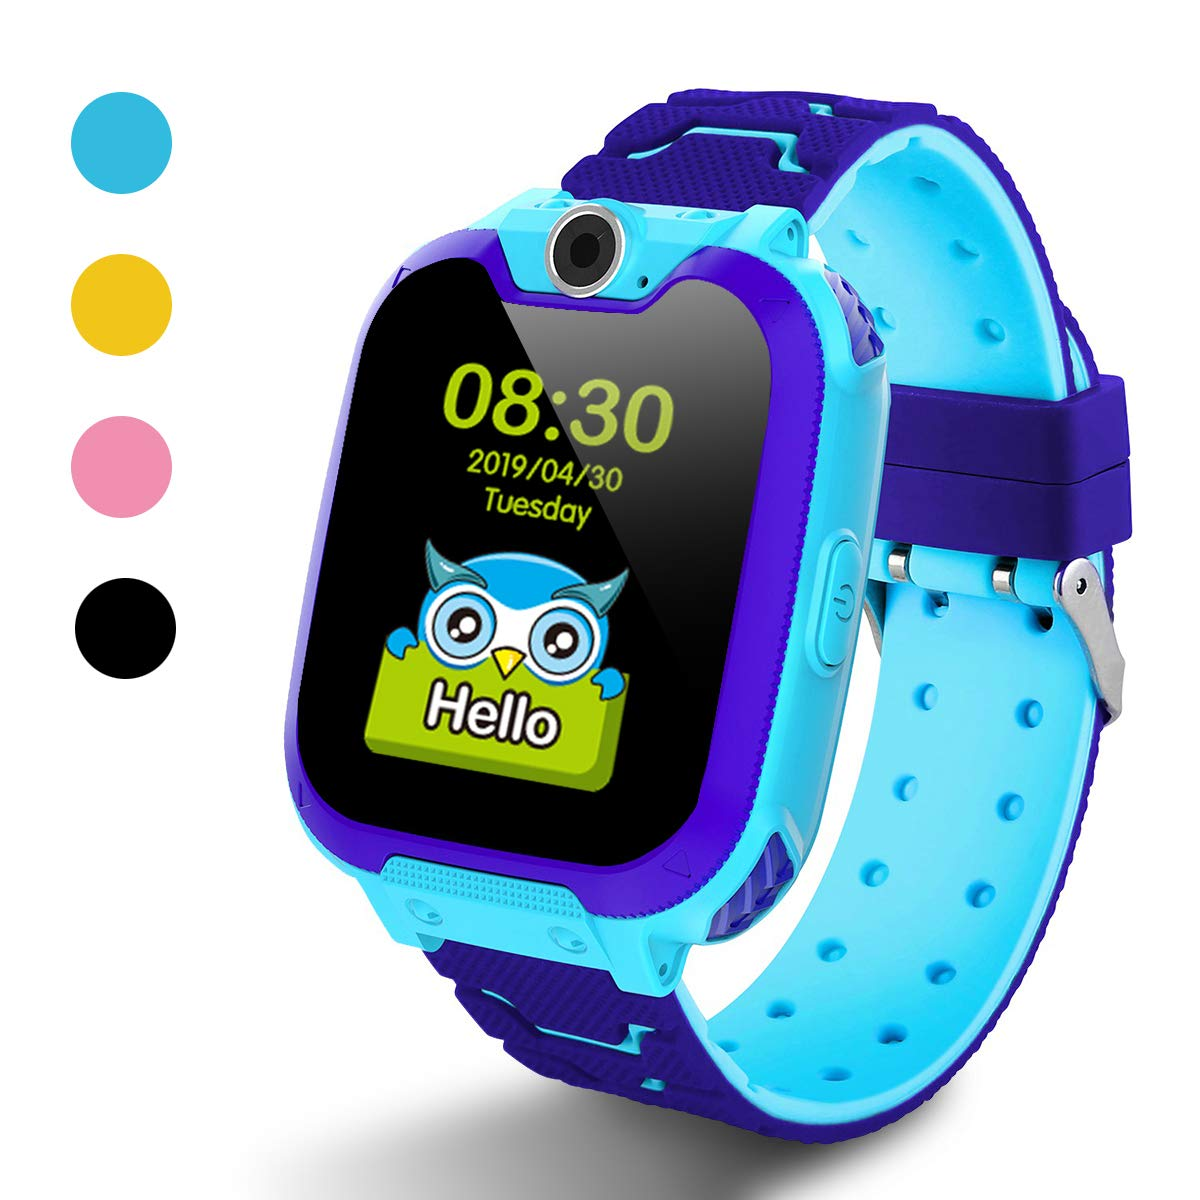 Kids Smart Watch for Boys Girls - Kids Watches with Games - 1.44'' HD Touch Screen for Children with SOS Call Camera Music Player Game Alarm (Blue)